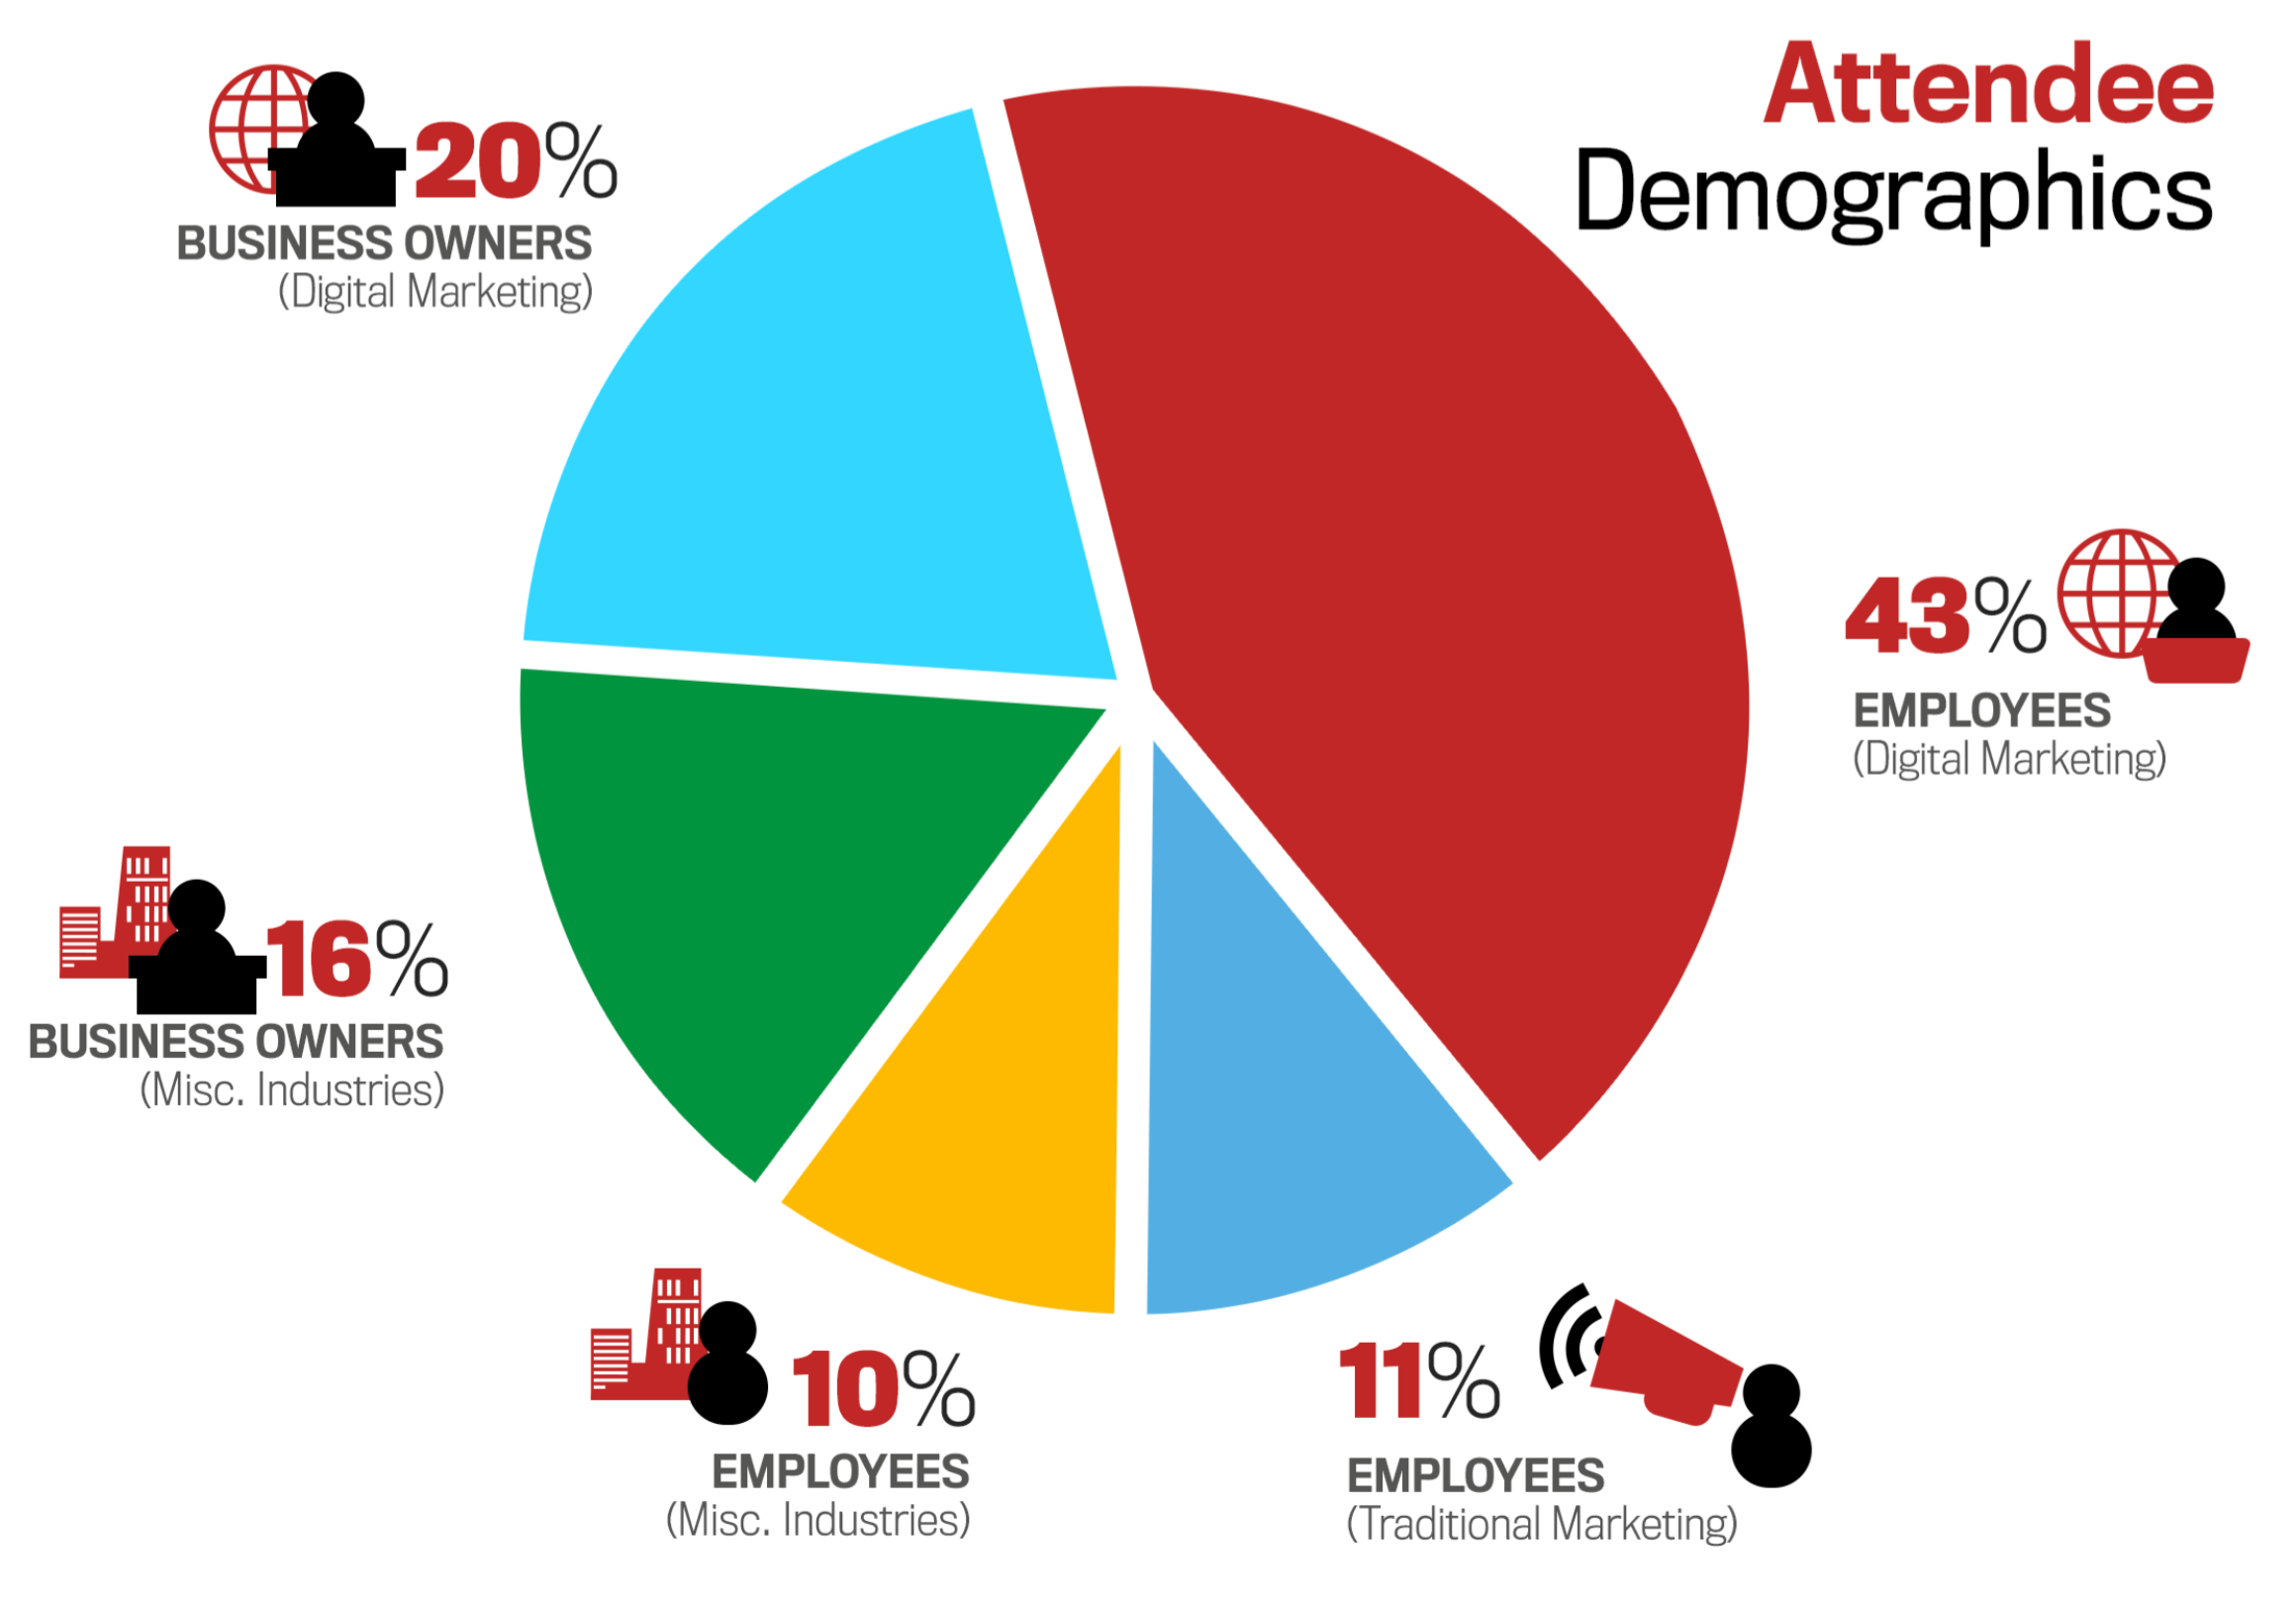 rocks digital marketing attendee demographics